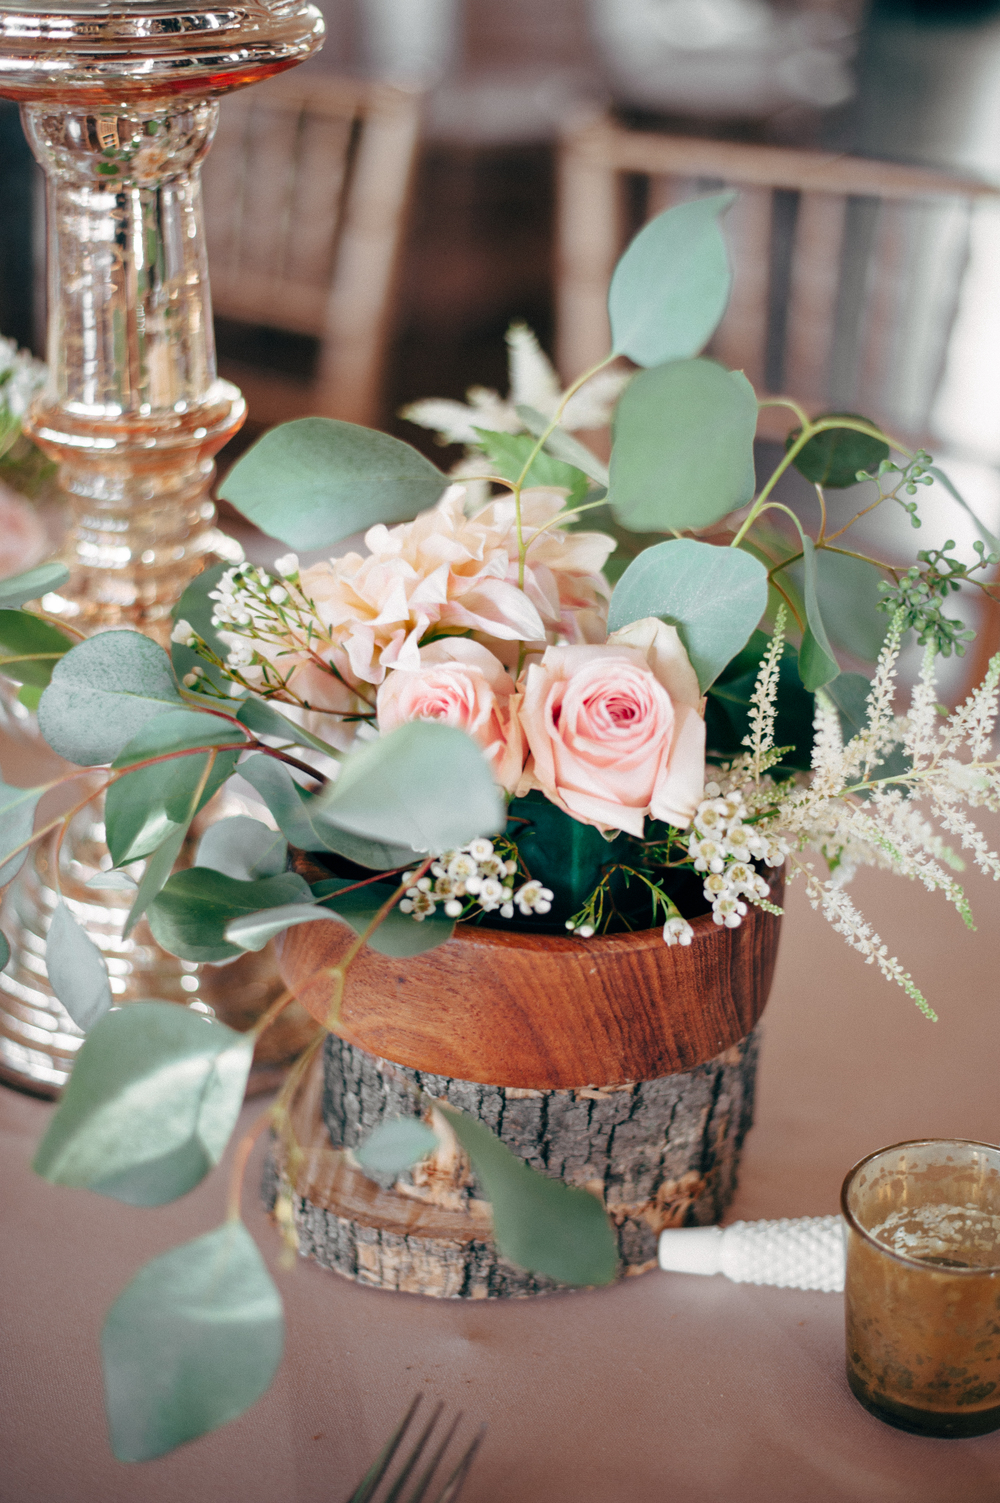 Rustic Wood Slice Wedding Centerpiece